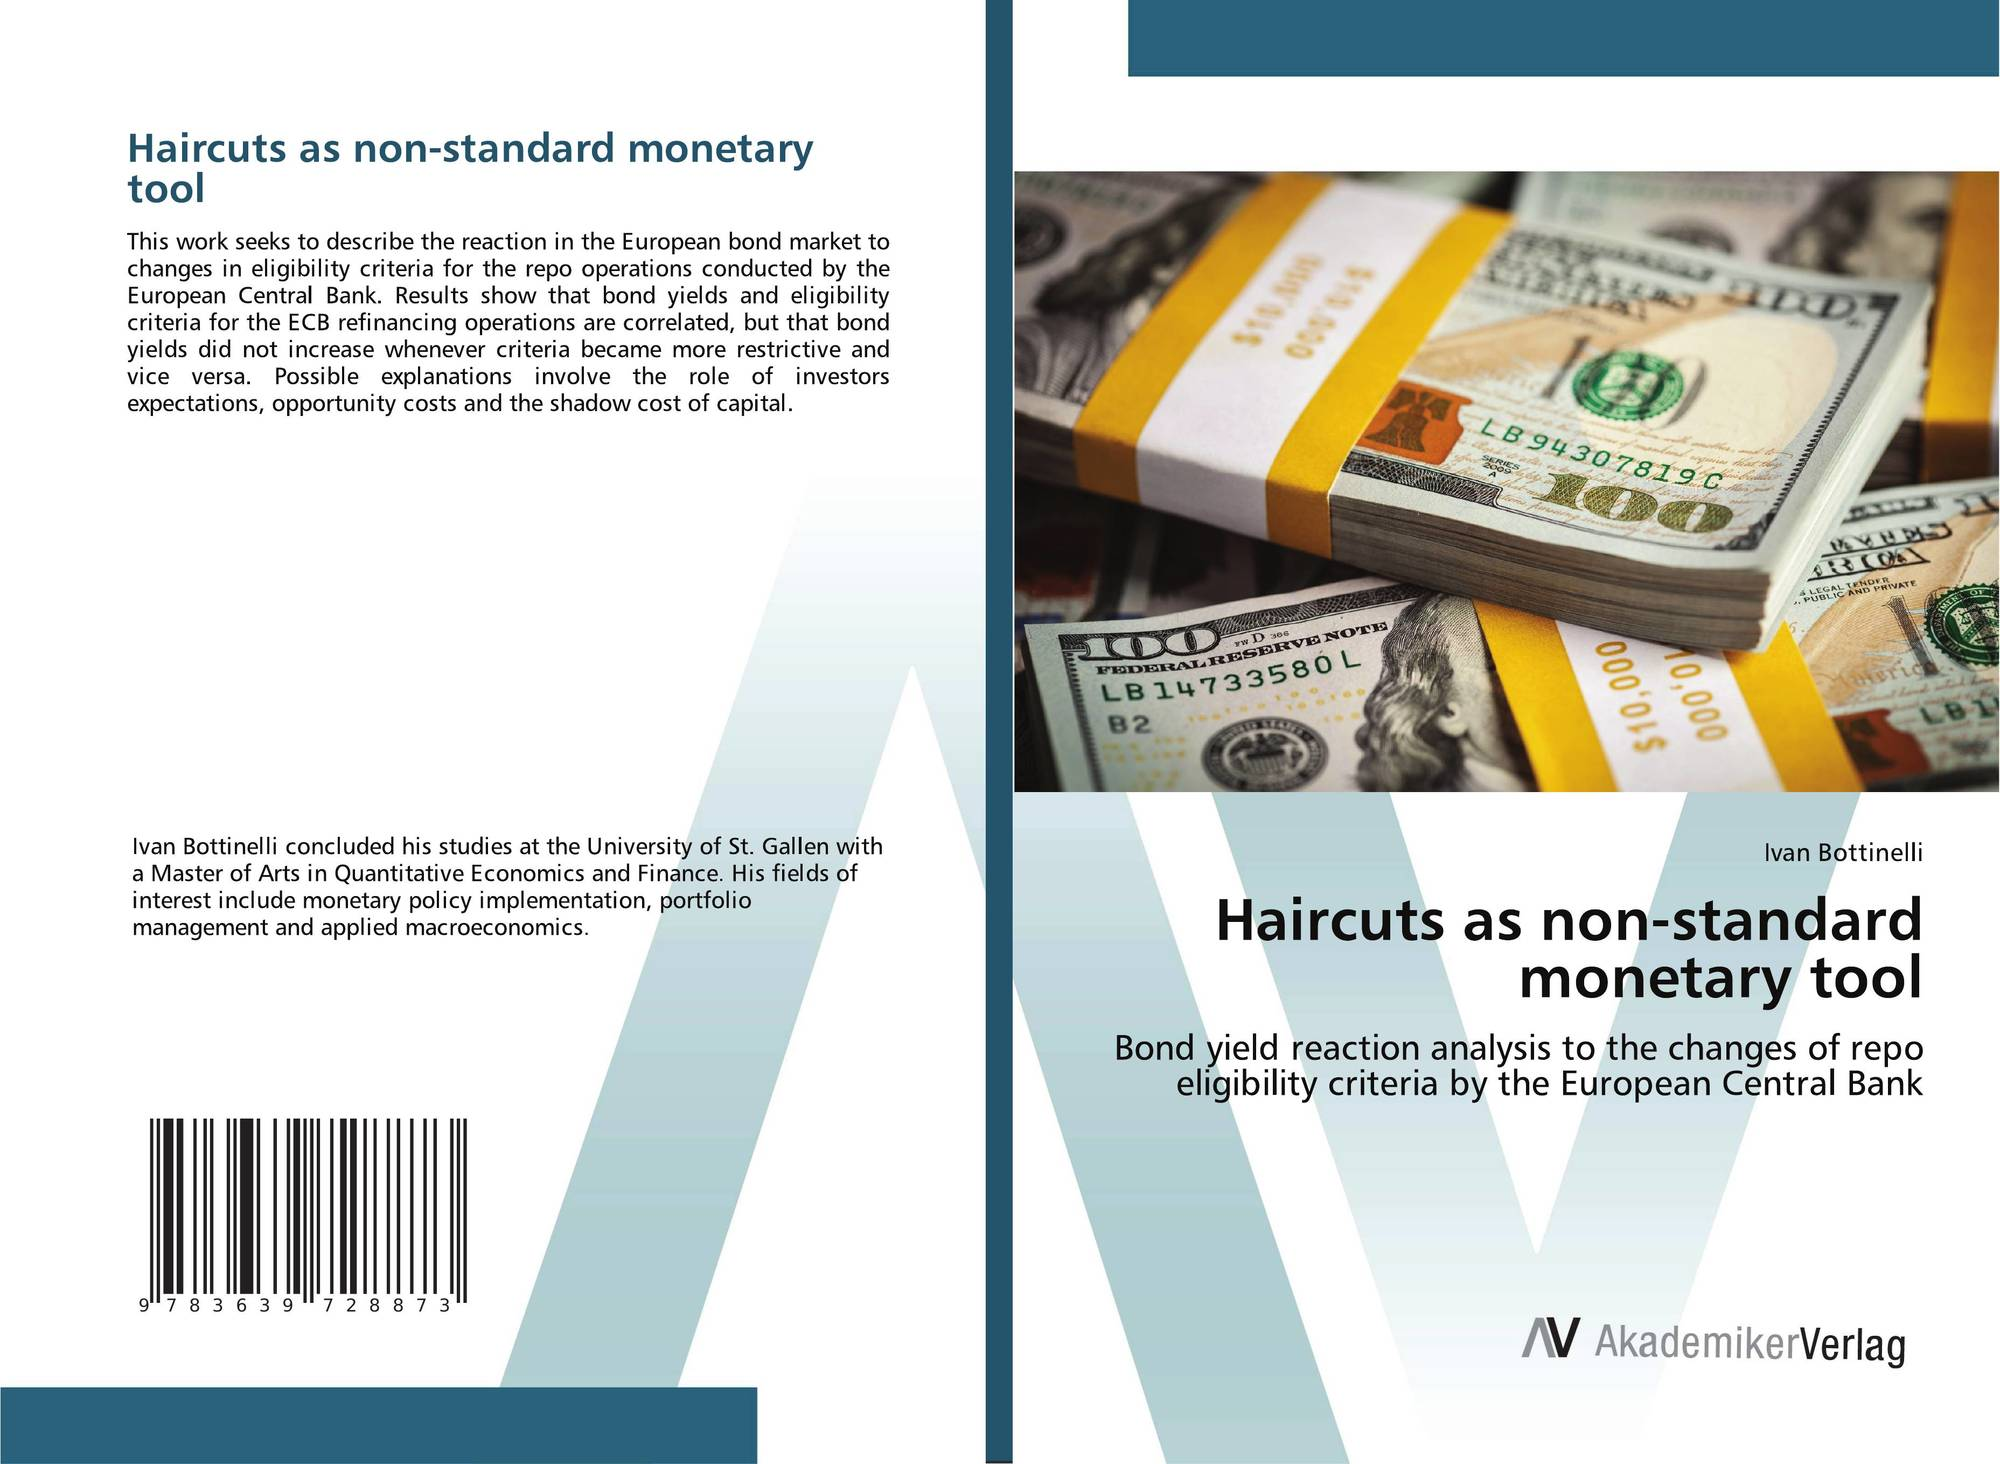 """monetary standard The term """"monetary standard"""" refers to the monetary system of a country prof halm defines monetary standard as the """"principal method of regulating the quantity and the exchange value of standard money."""